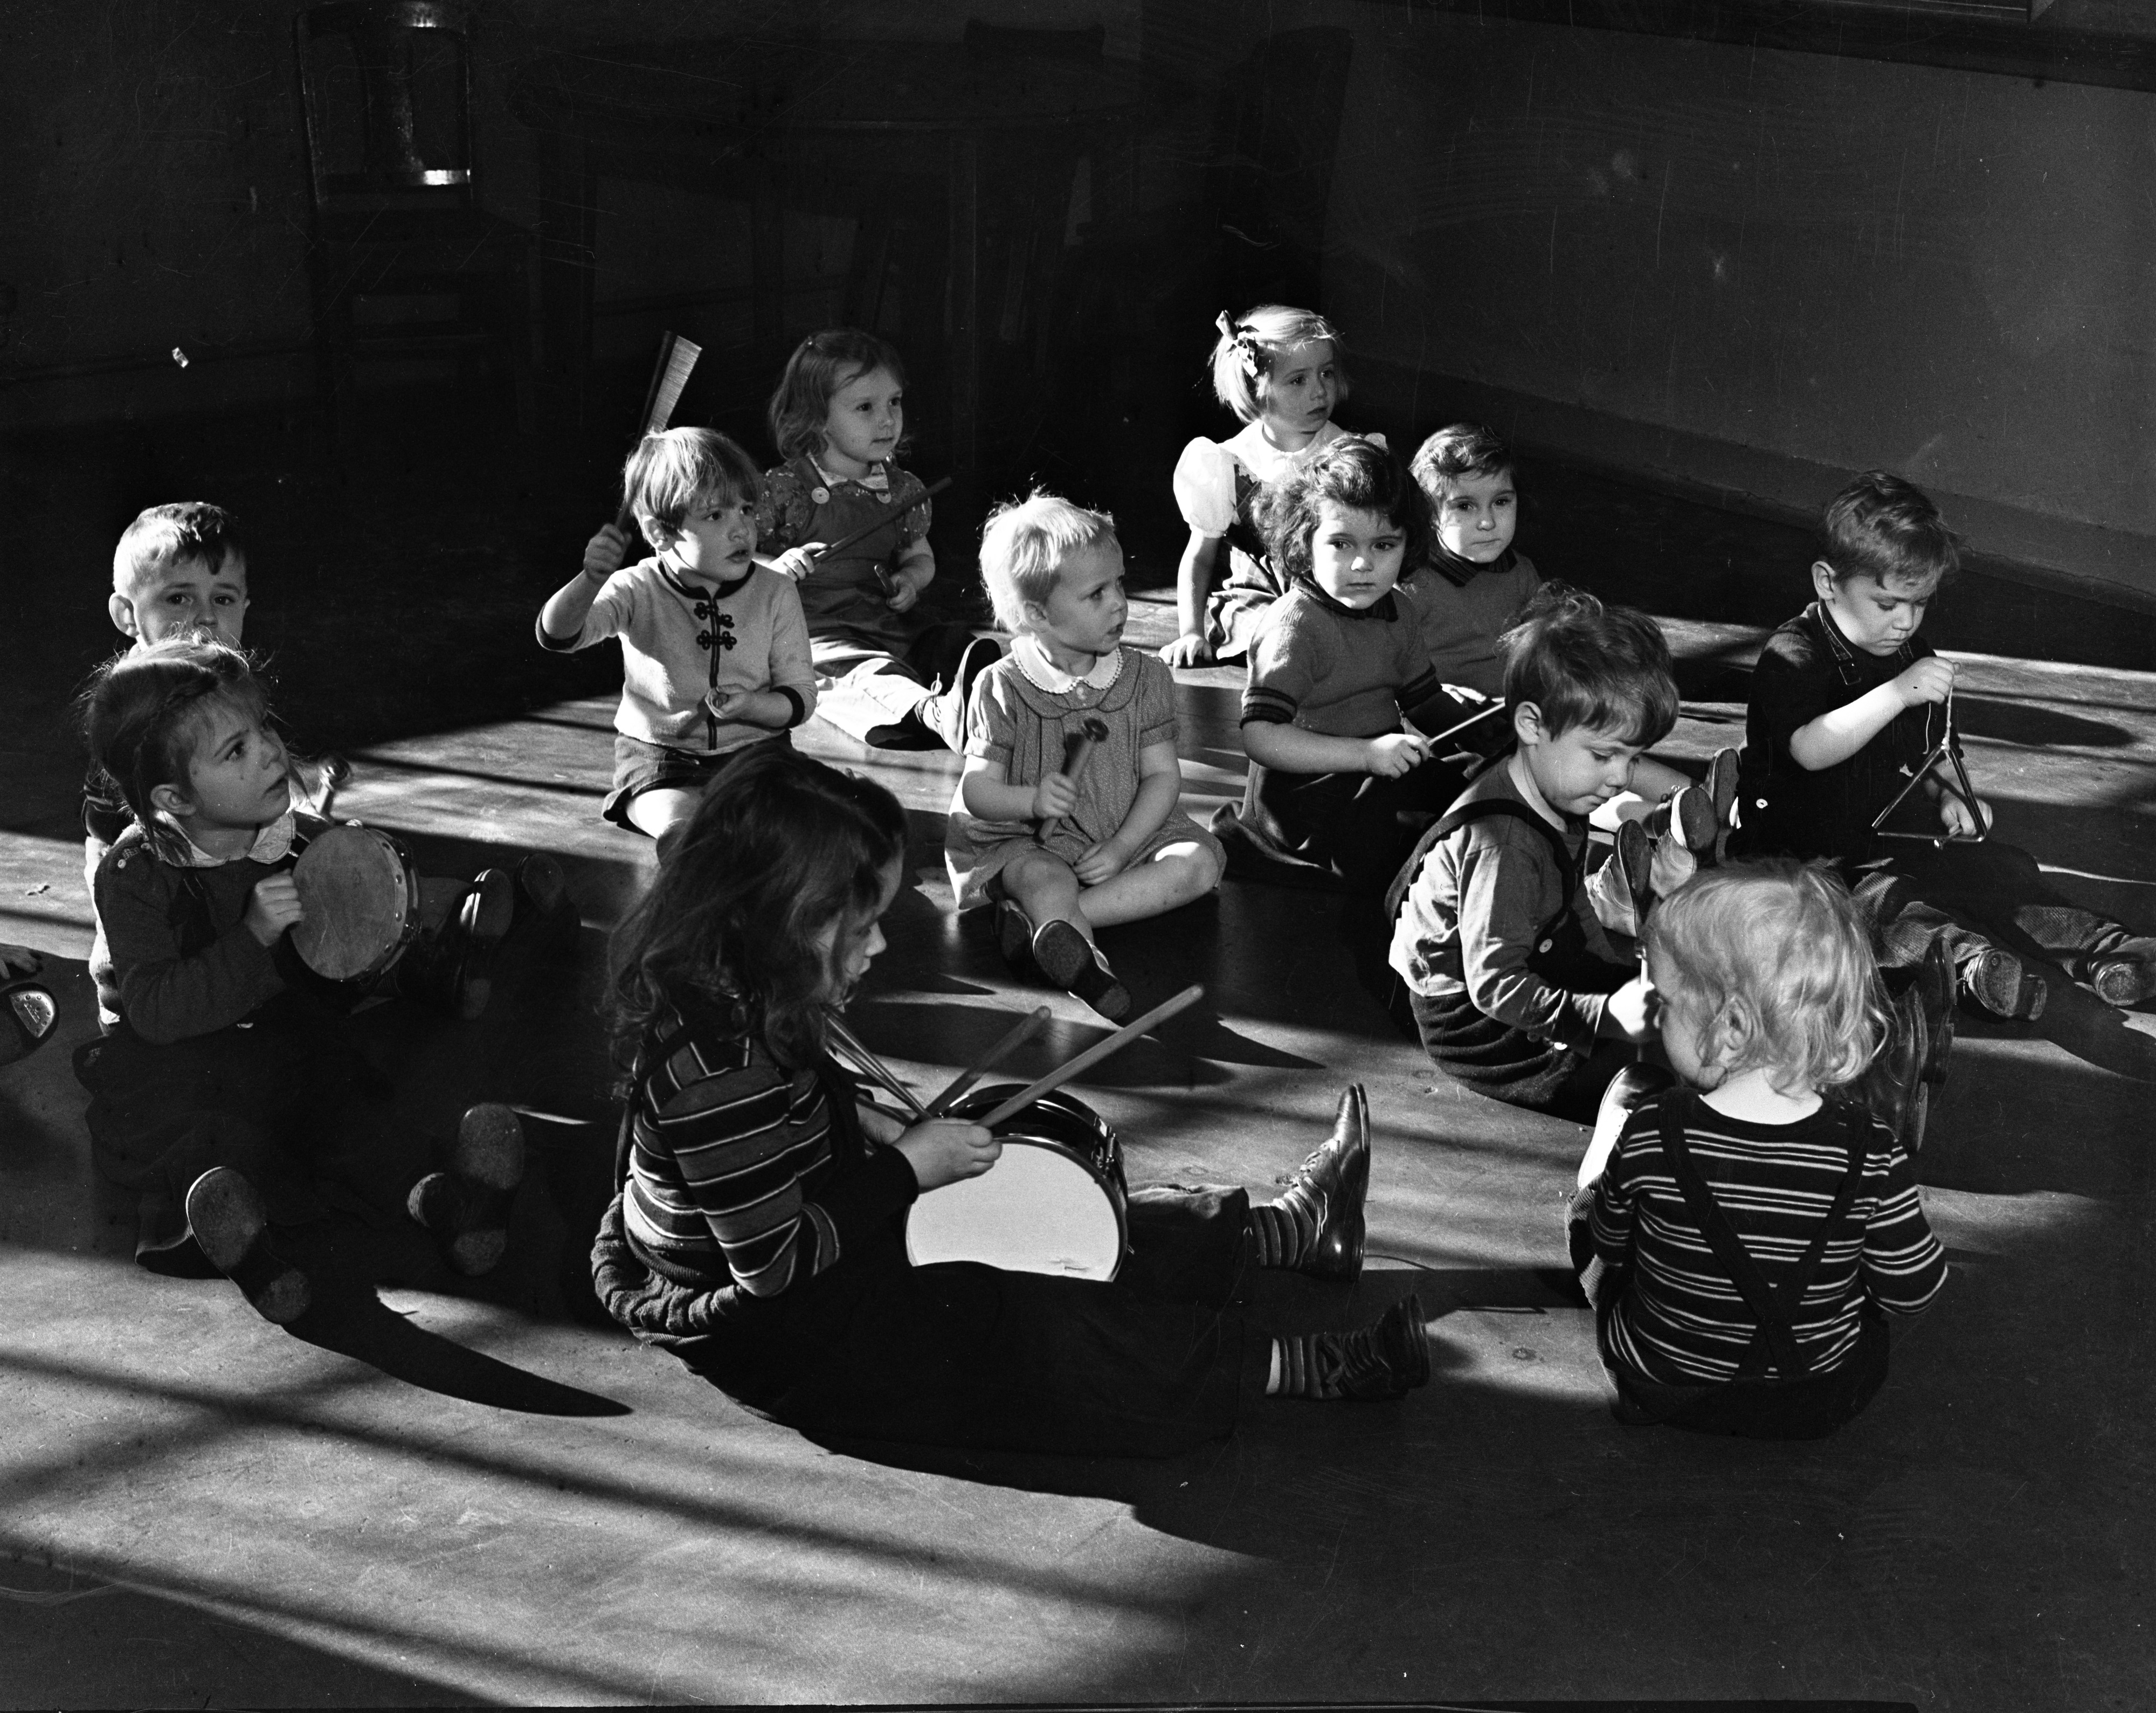 Music Time at Mack Nursery School, January 1939 image